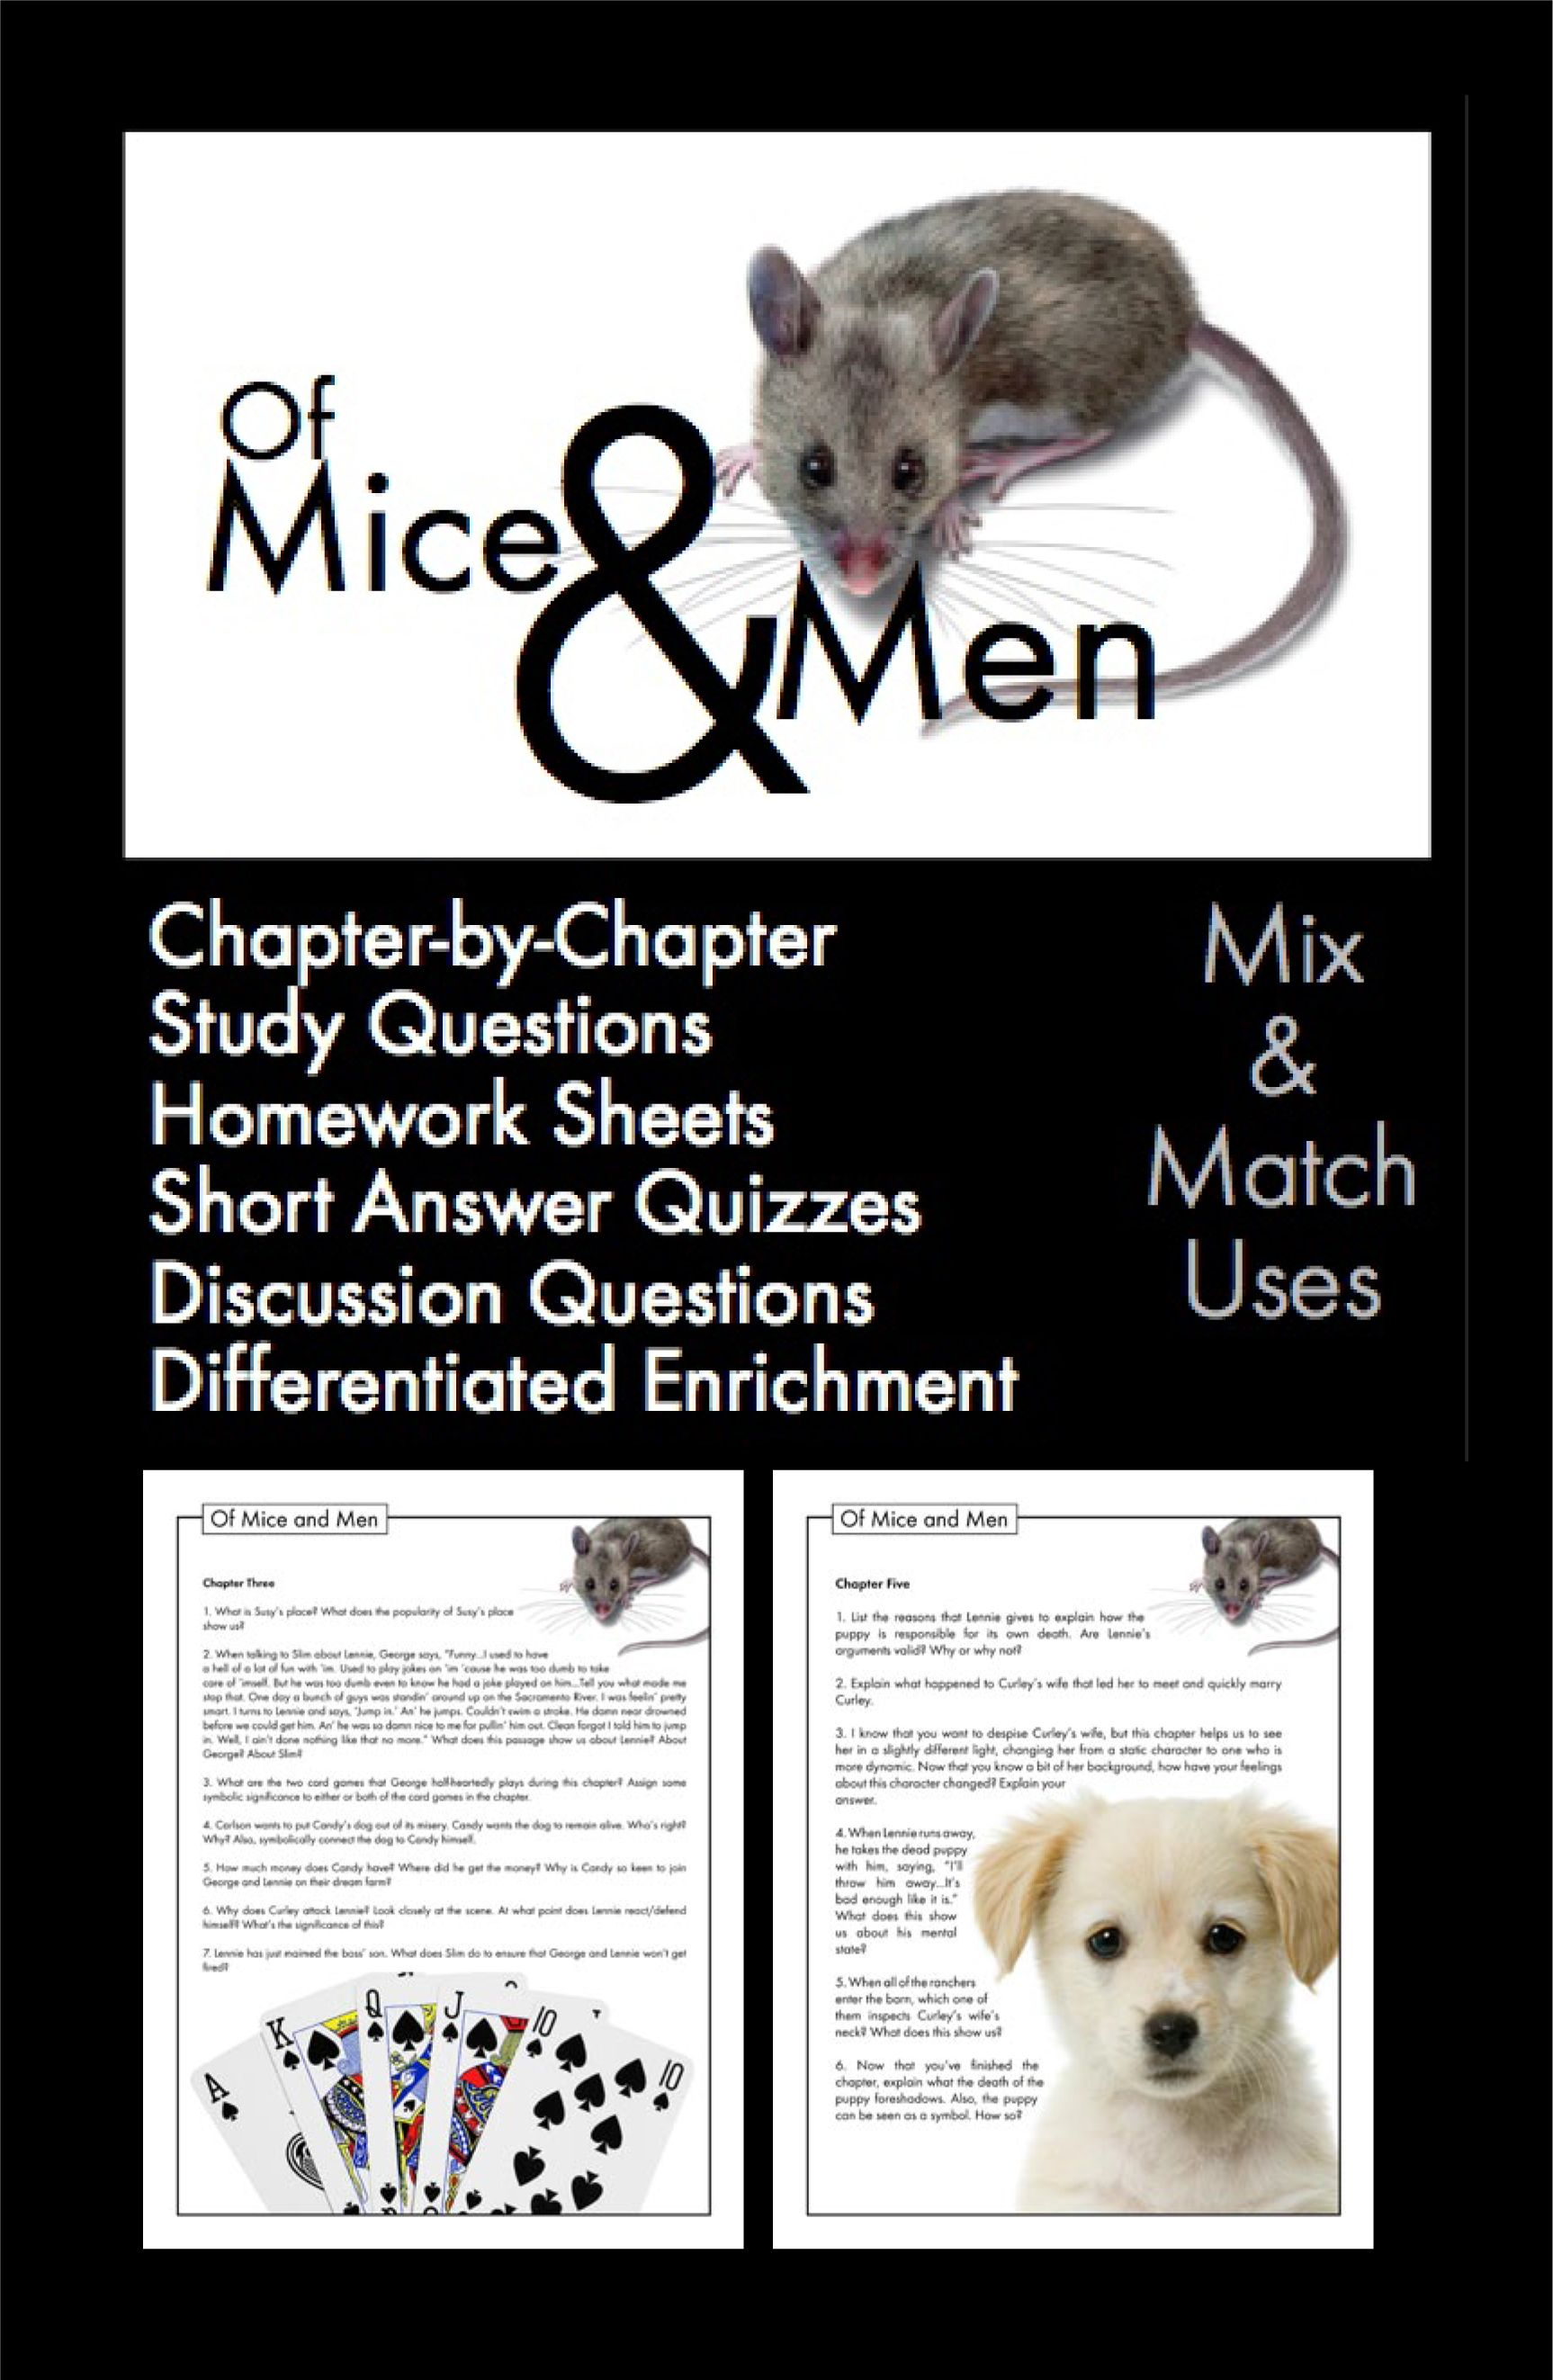 of mice and men 13 essay - of mice and men: the struggle for happiness in the novel of mice and men, john steinbeck illustrates the possibilities that life has and its effects on lennie, crooks and george it shows a view of two outsiders struggling to understand their own unique places in the world.